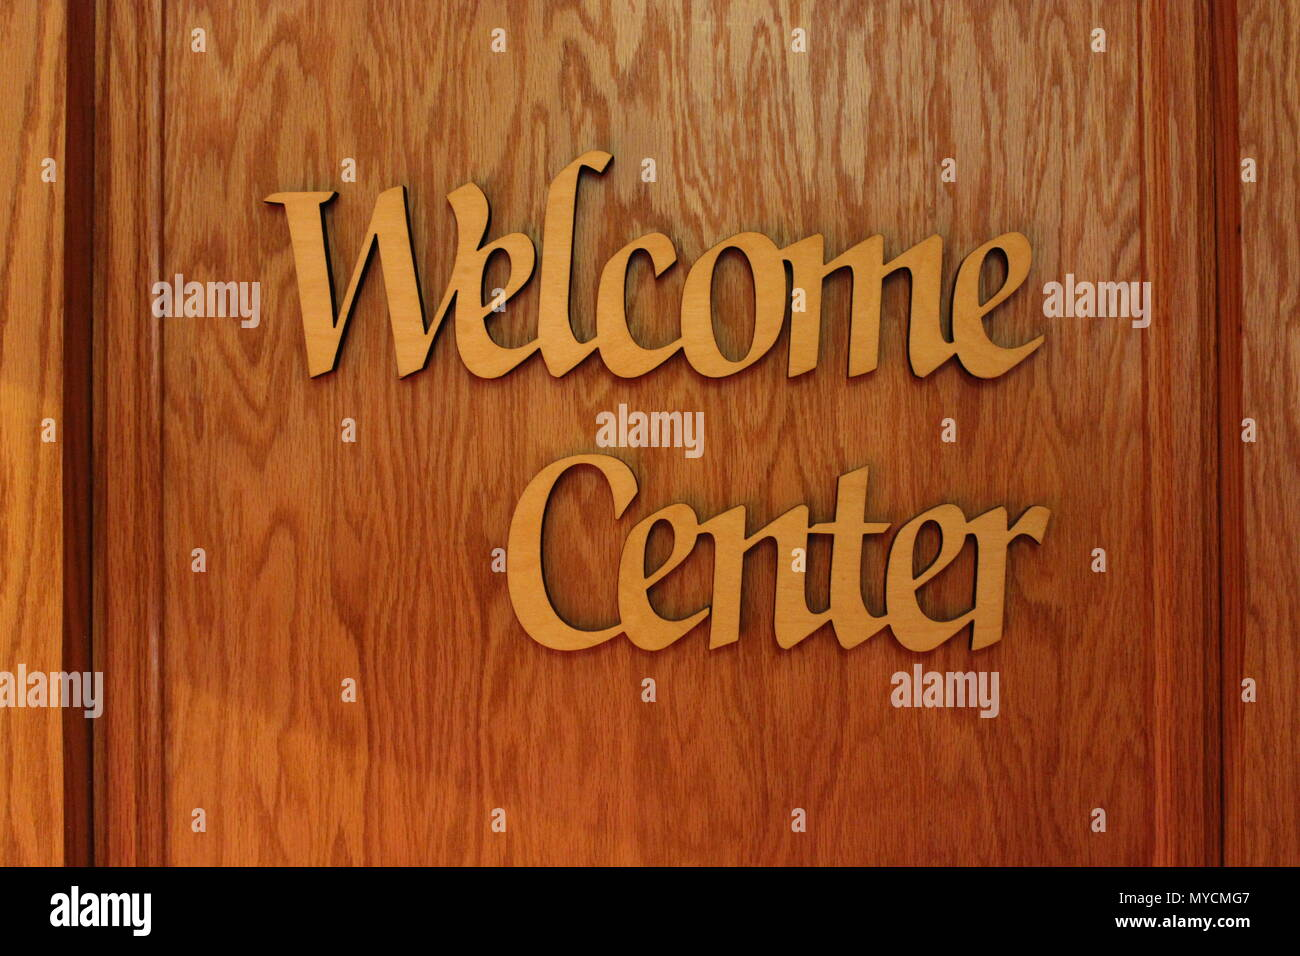 Welcome Center wood sign at Ebenezer Lutheran church in Chicago, Illinois. - Stock Image